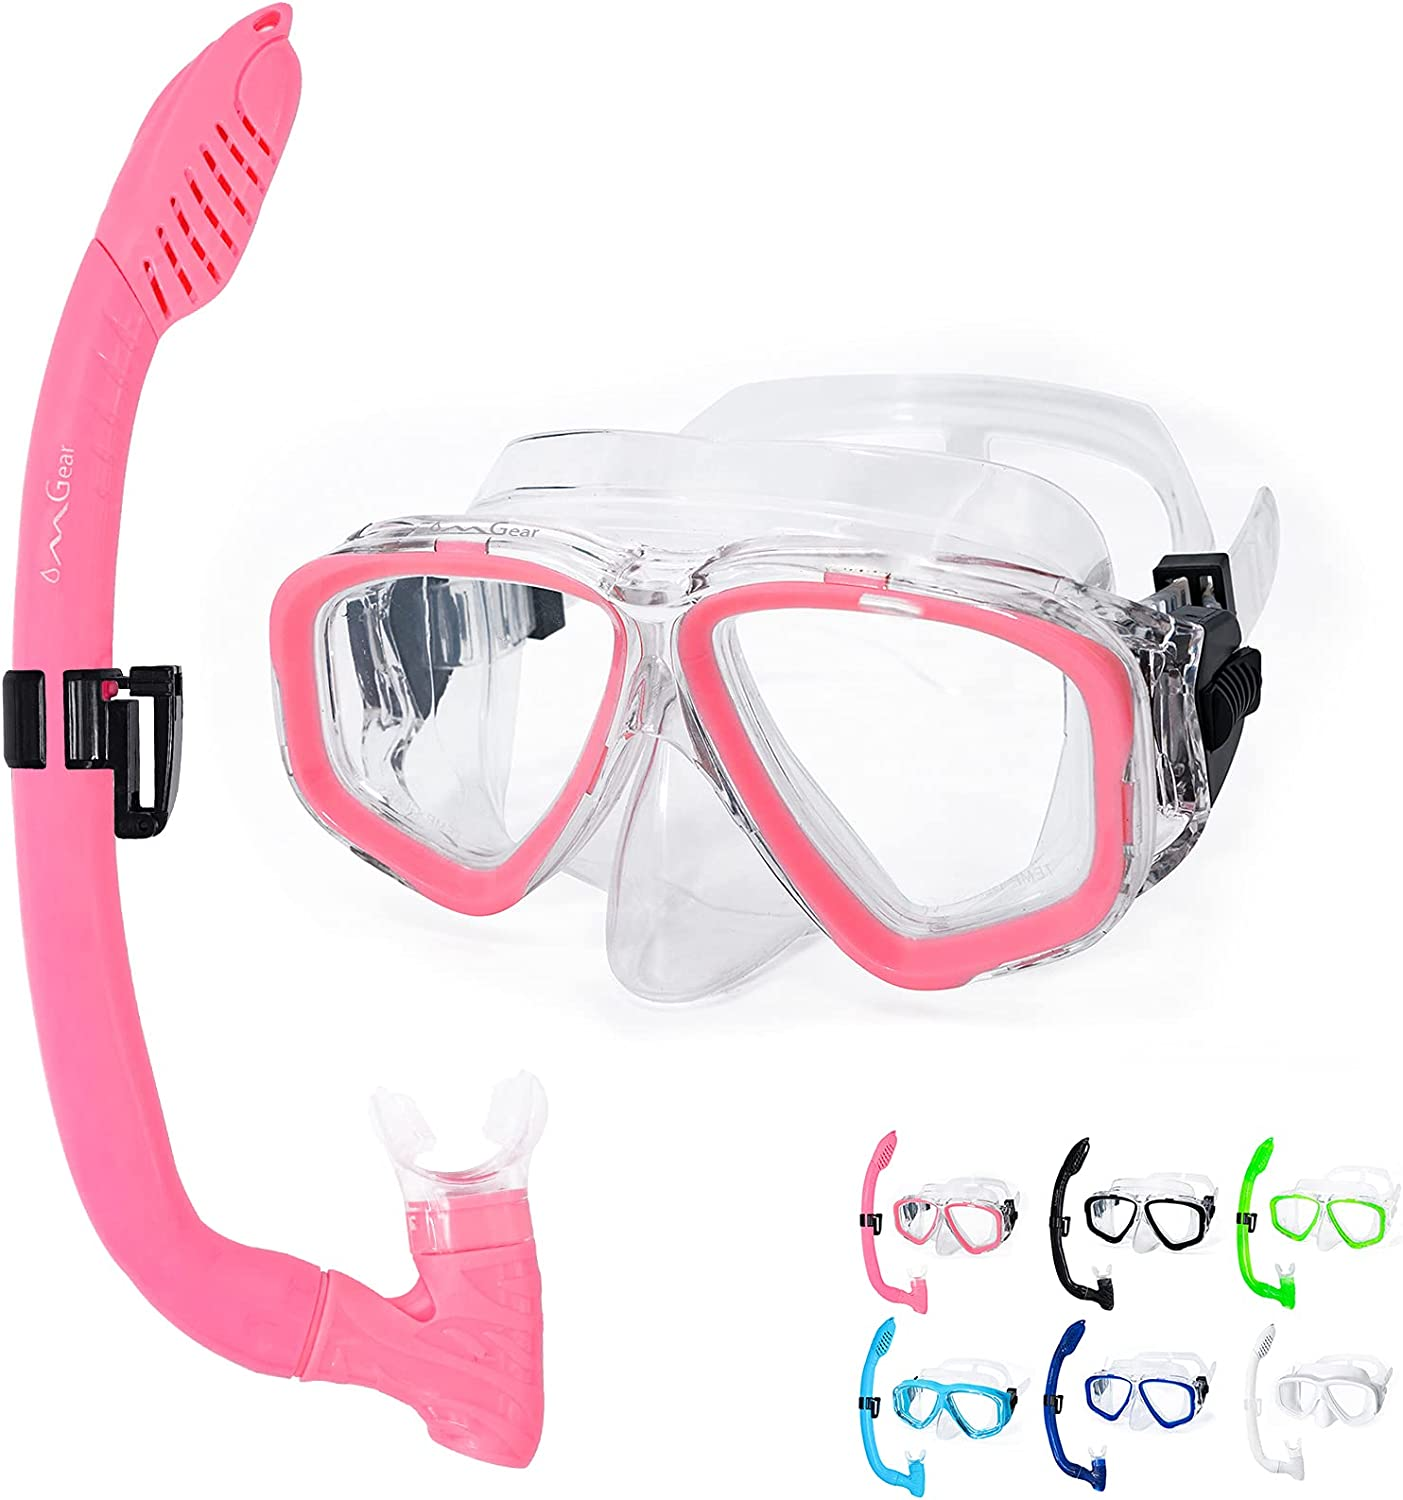 OMGear Diving Goggles and Snorkel Set for Kids Junior Youth Children Swim Mask Snorkel Combo Child Scuba Dive Mask Snorkeling Equipment(Pink) : Sports & Outdoors